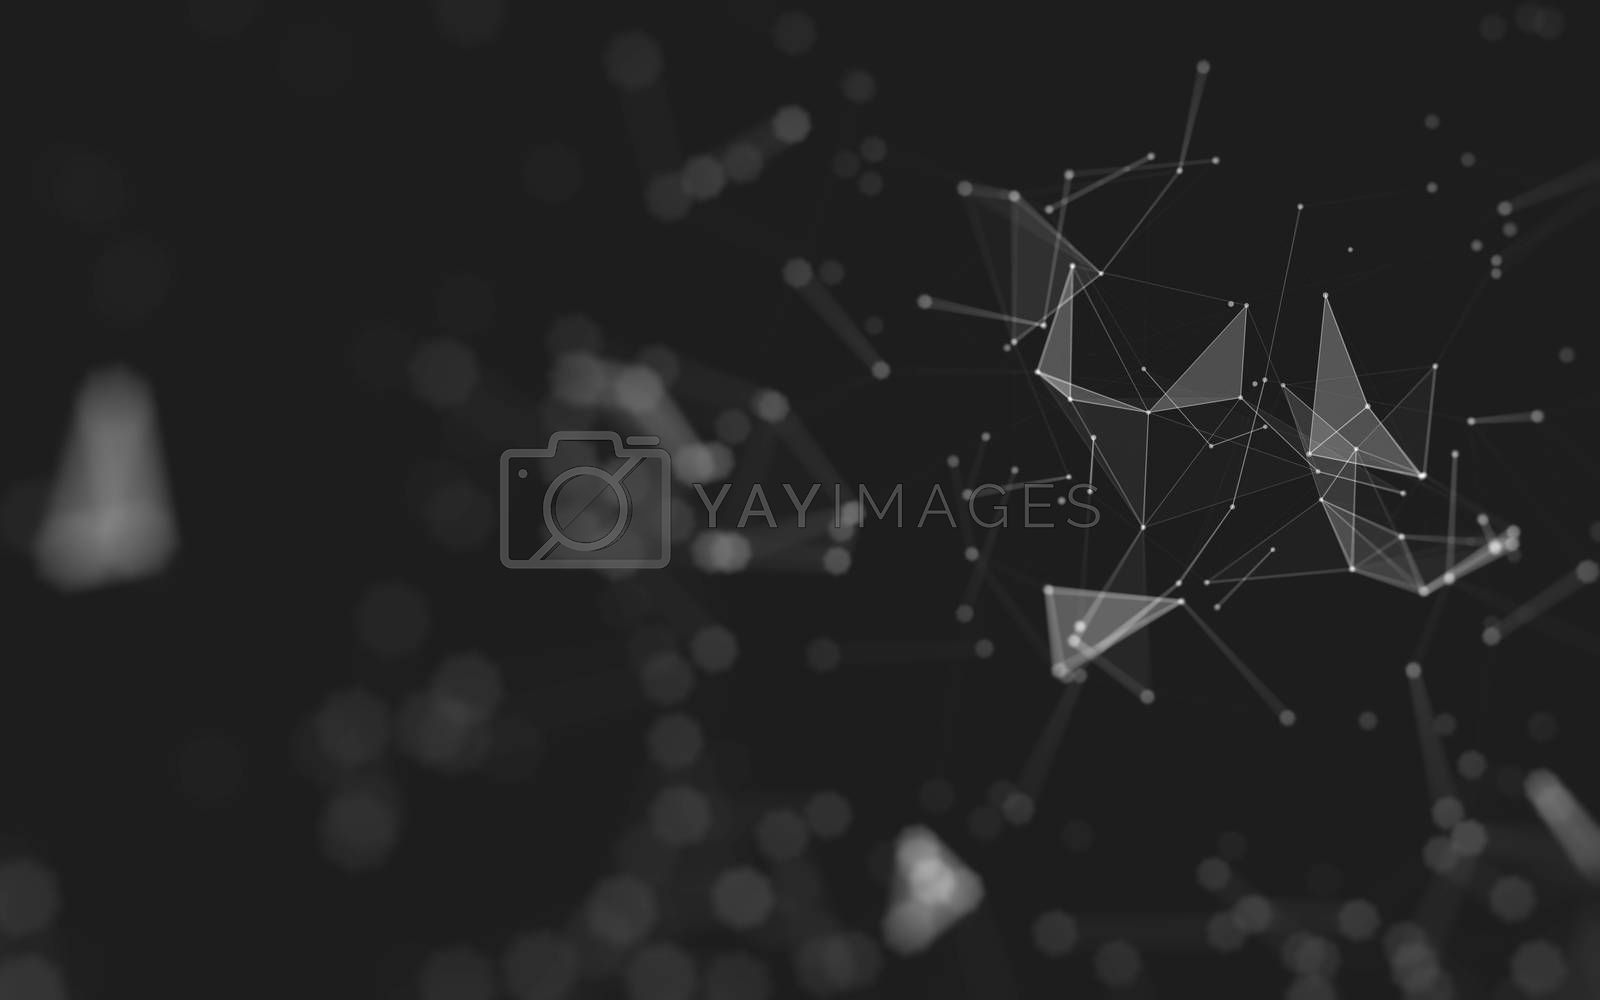 Abstract polygonal space low poly dark background, 3d rendering by Teerawit Tj-rabbit